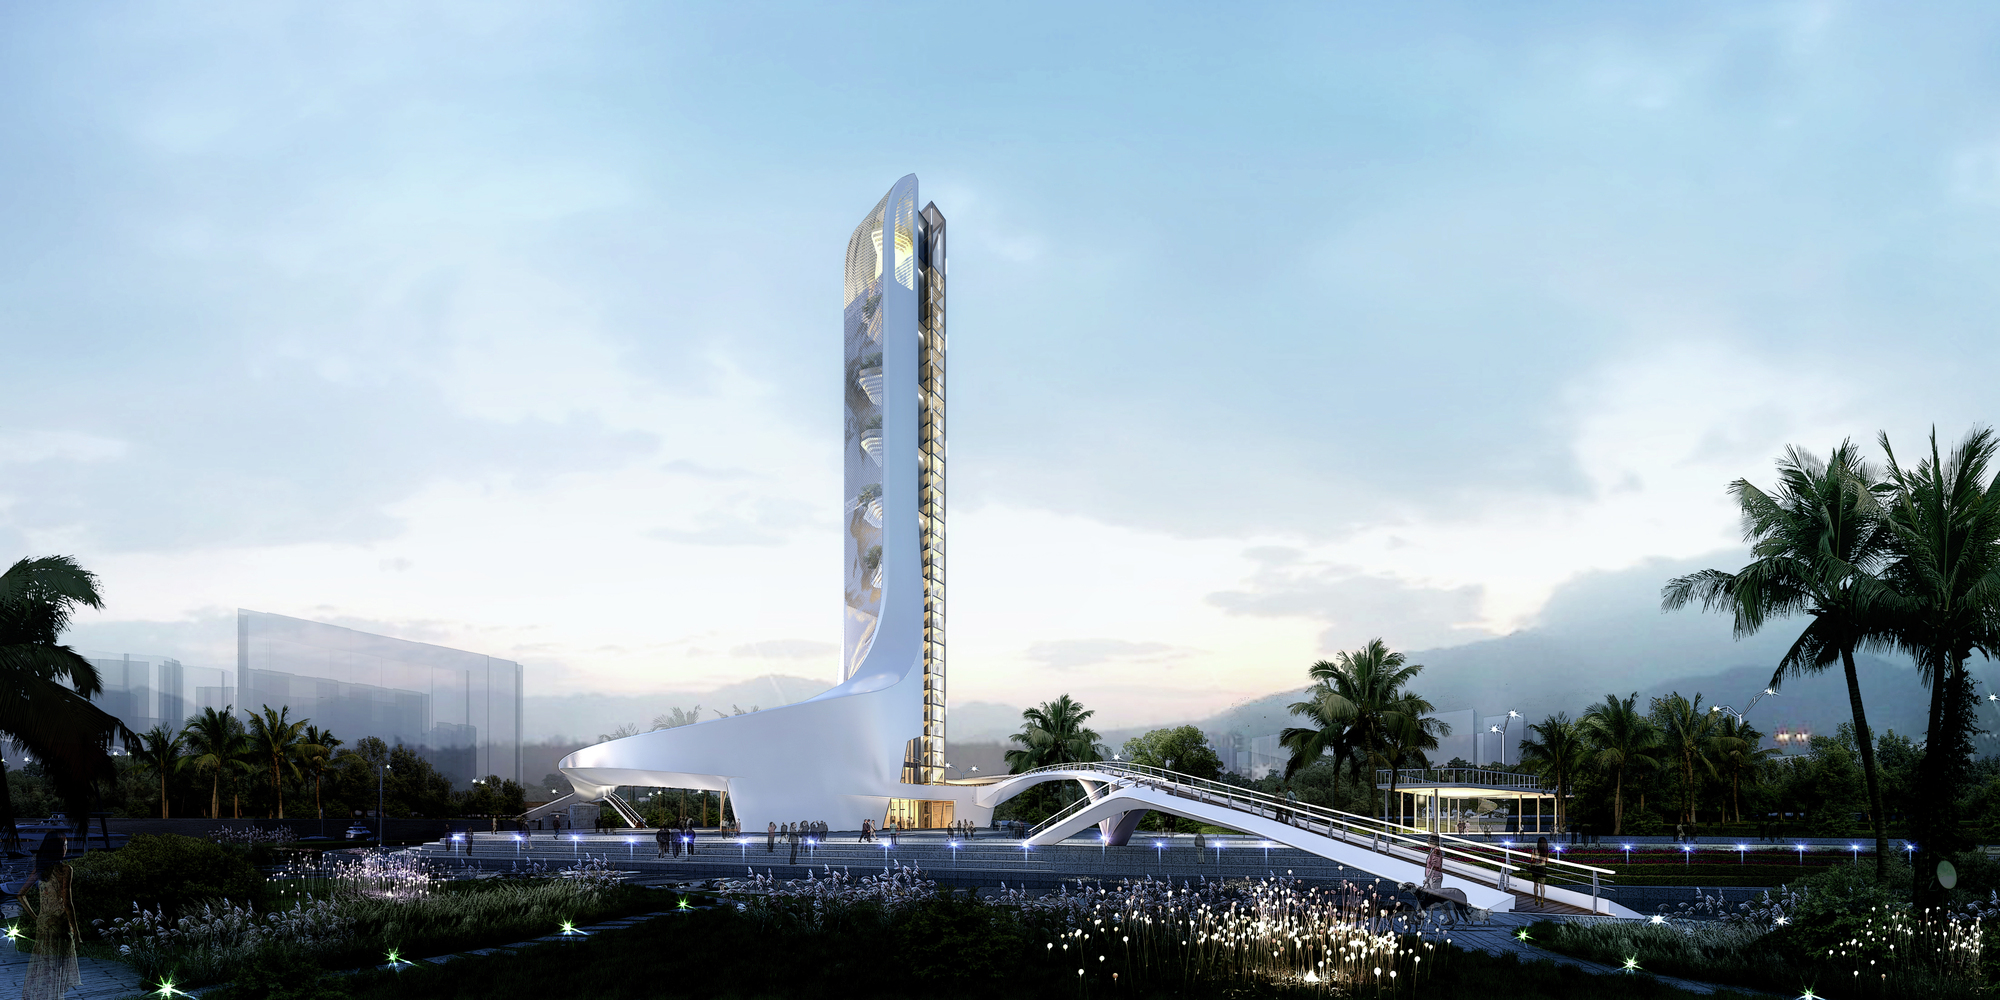 Competition entry wva s zhuhai observation tower archdaily for Architecte tower bridge